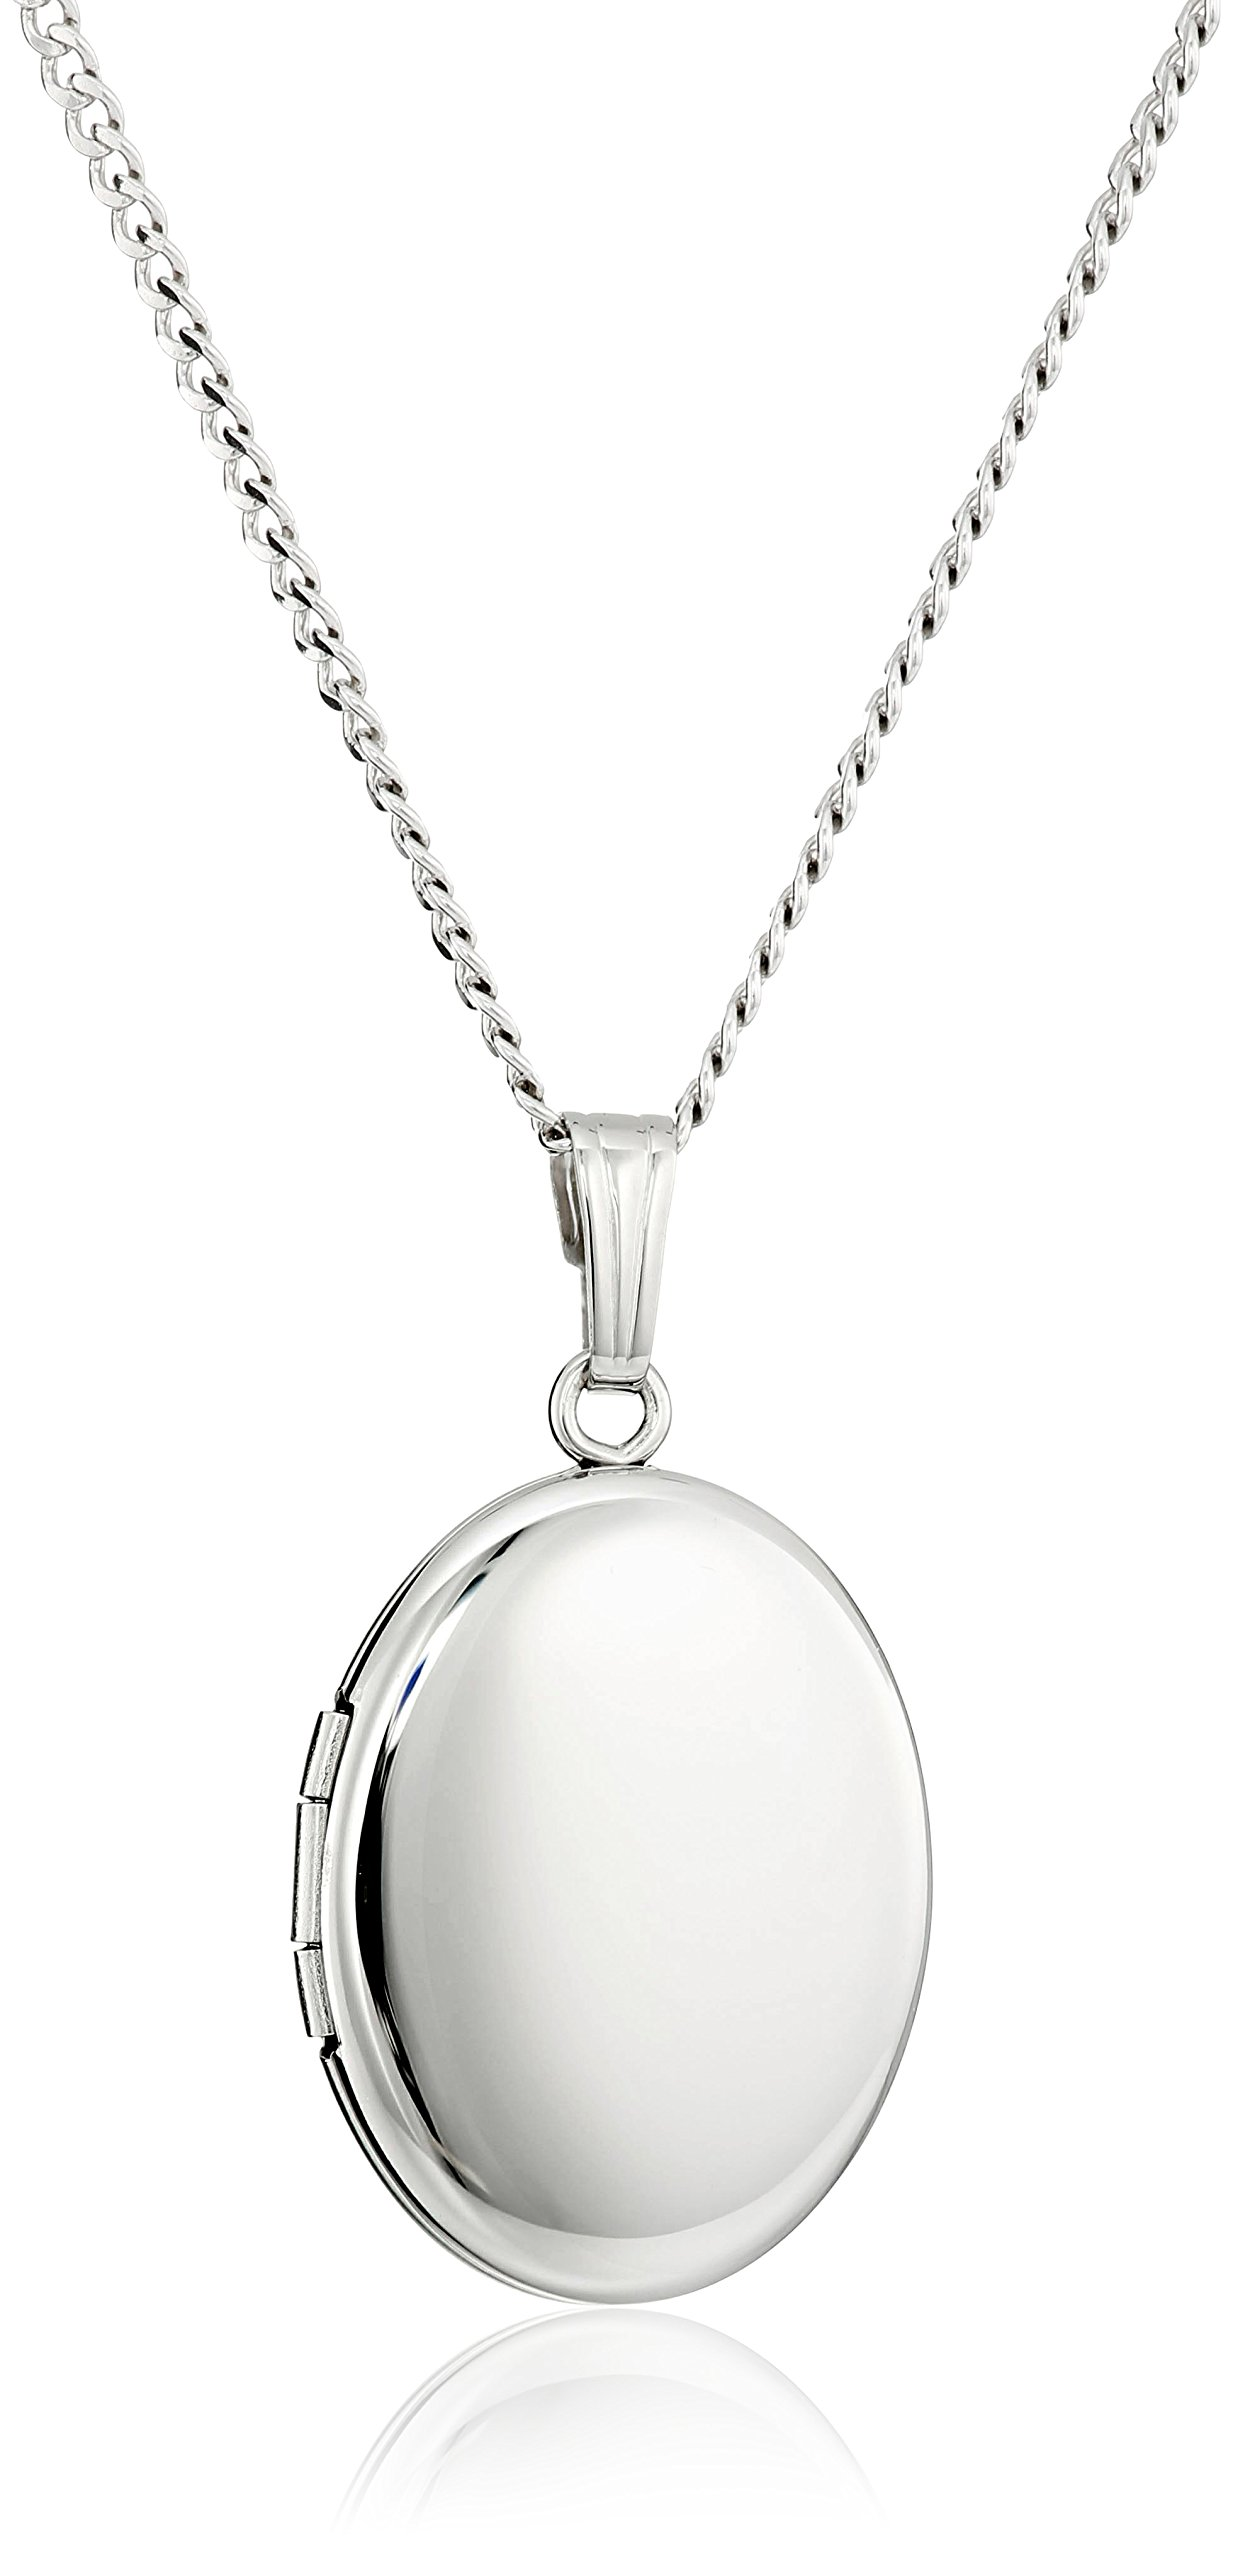 Sterling Silver Polished Oval Locket Necklace, 18'' by Amazon Collection